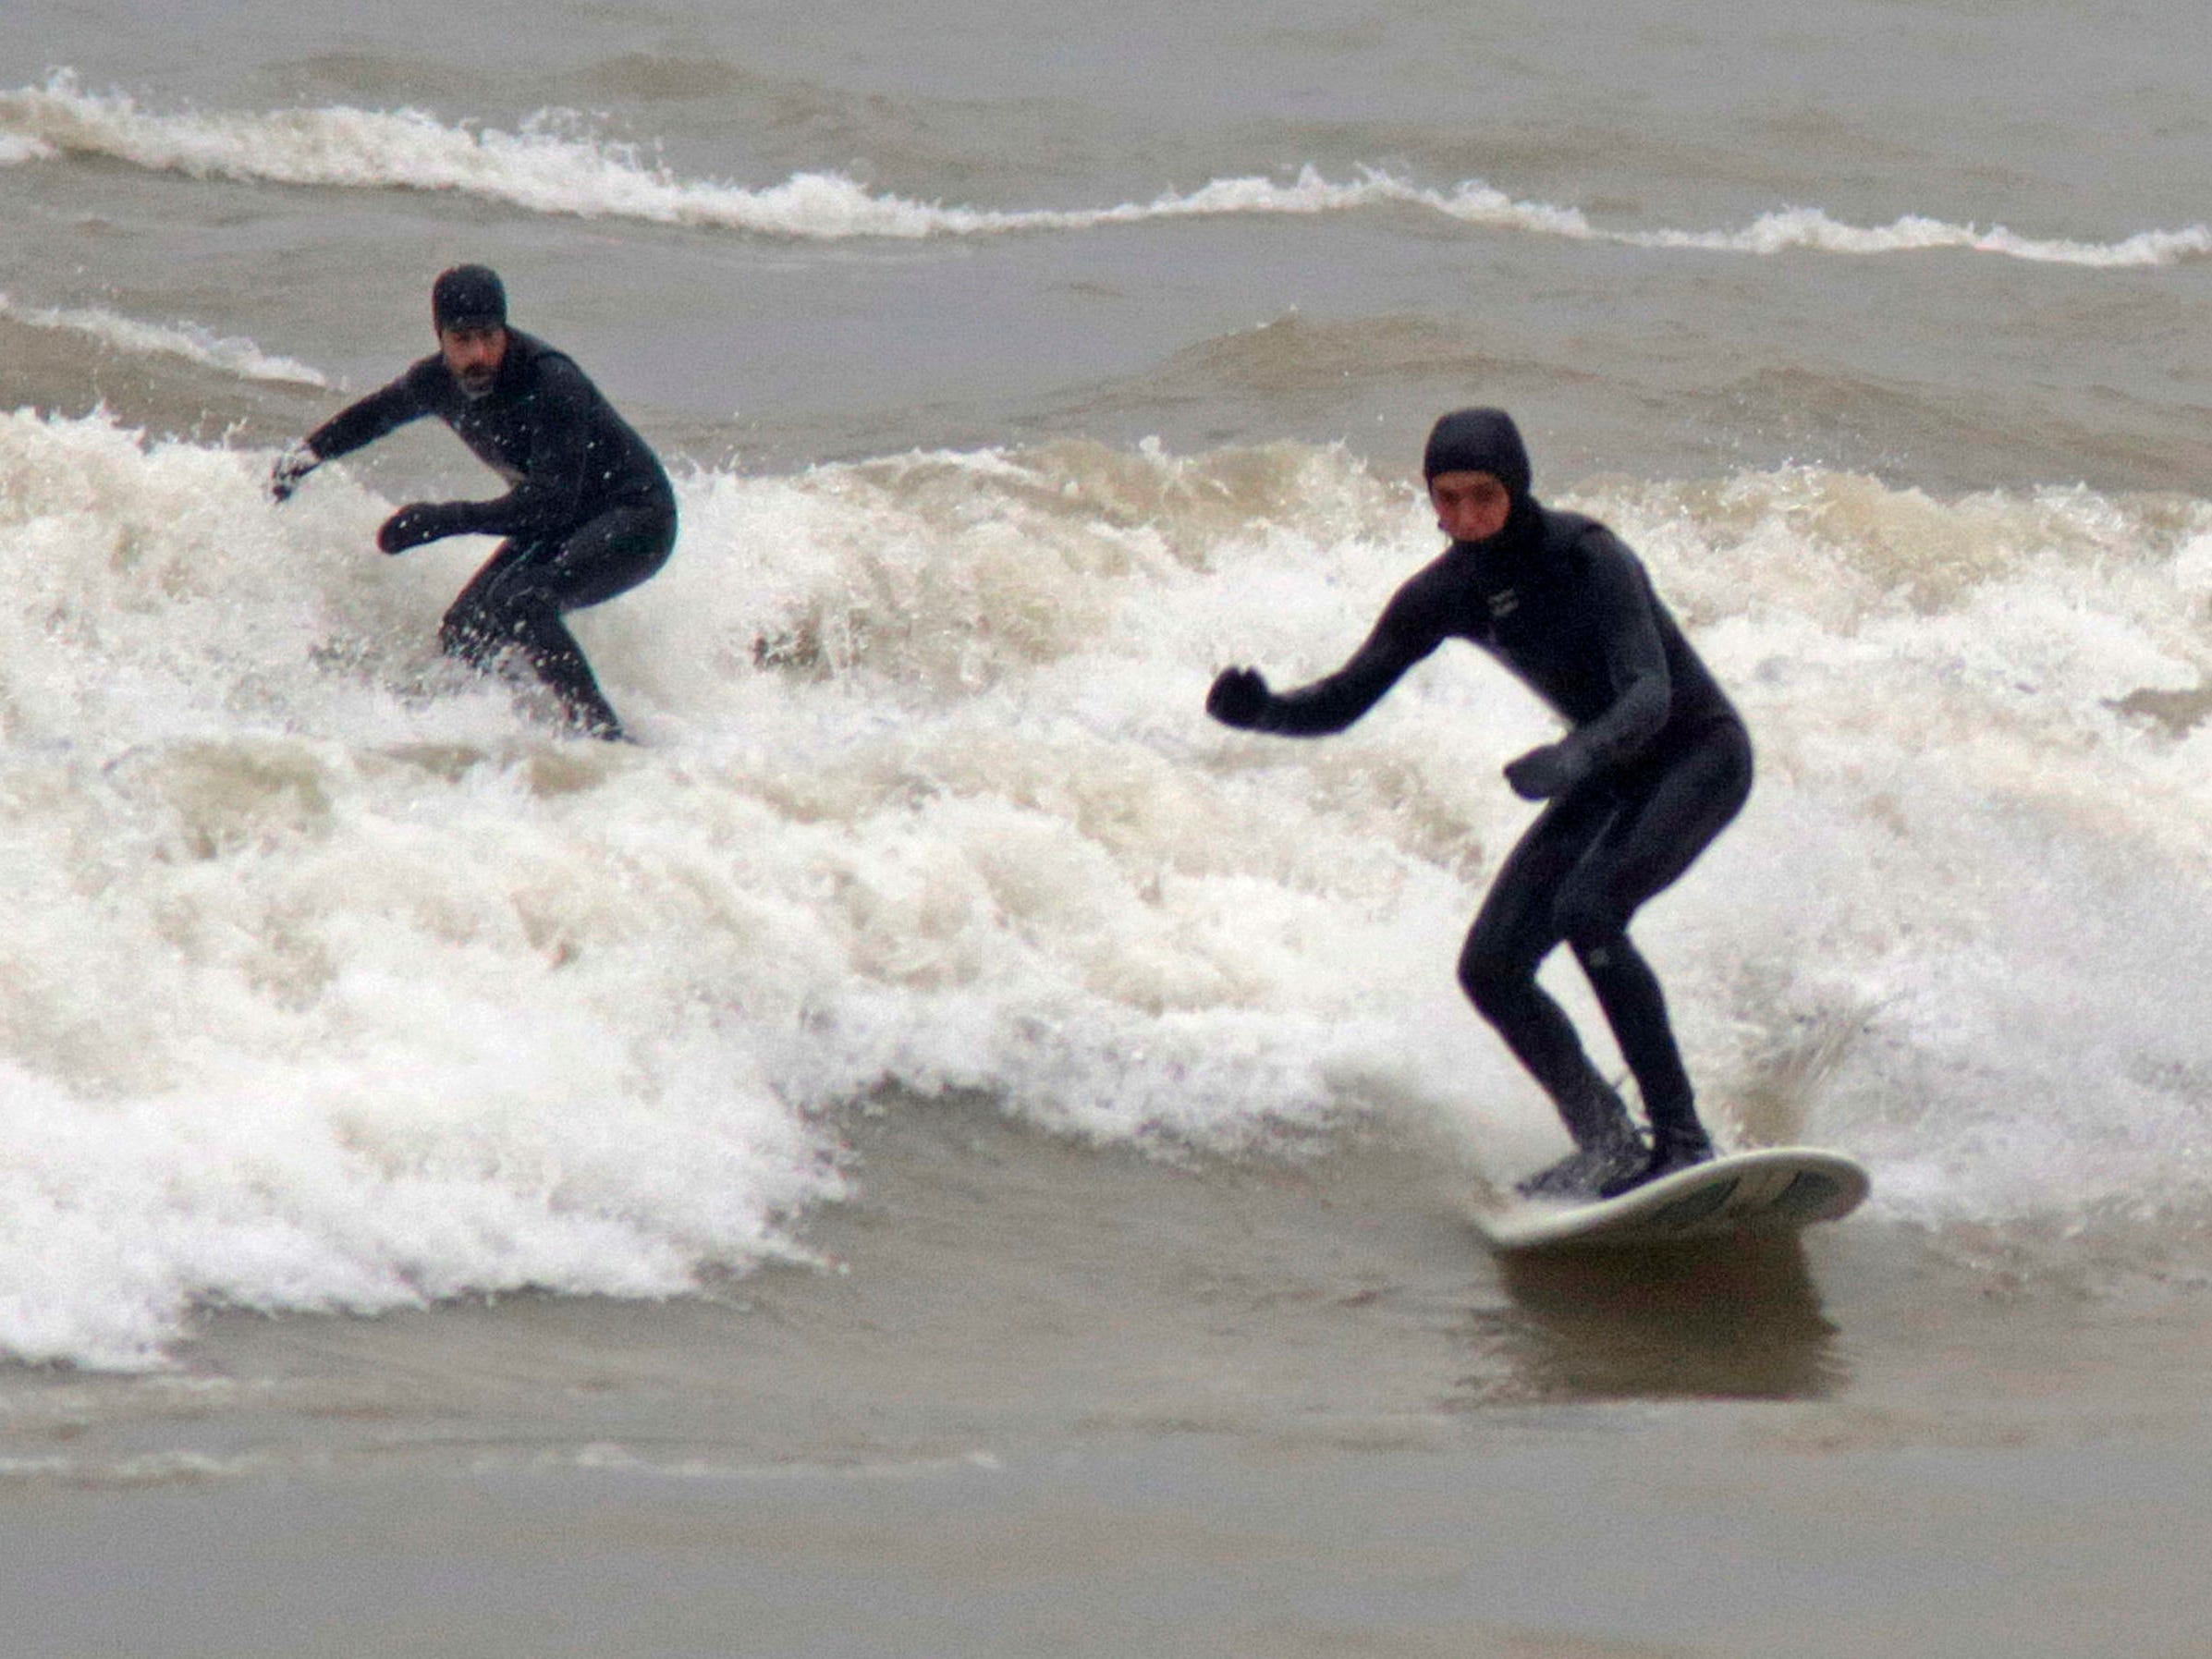 Surfers take on the waves at Deland Park, Monday, January 7, 2019, in Sheboygan, Wis. Westerly winds of 15-25 knots were expected to be in the 3 to 8 foot range with possibilities as high as 10 feet.